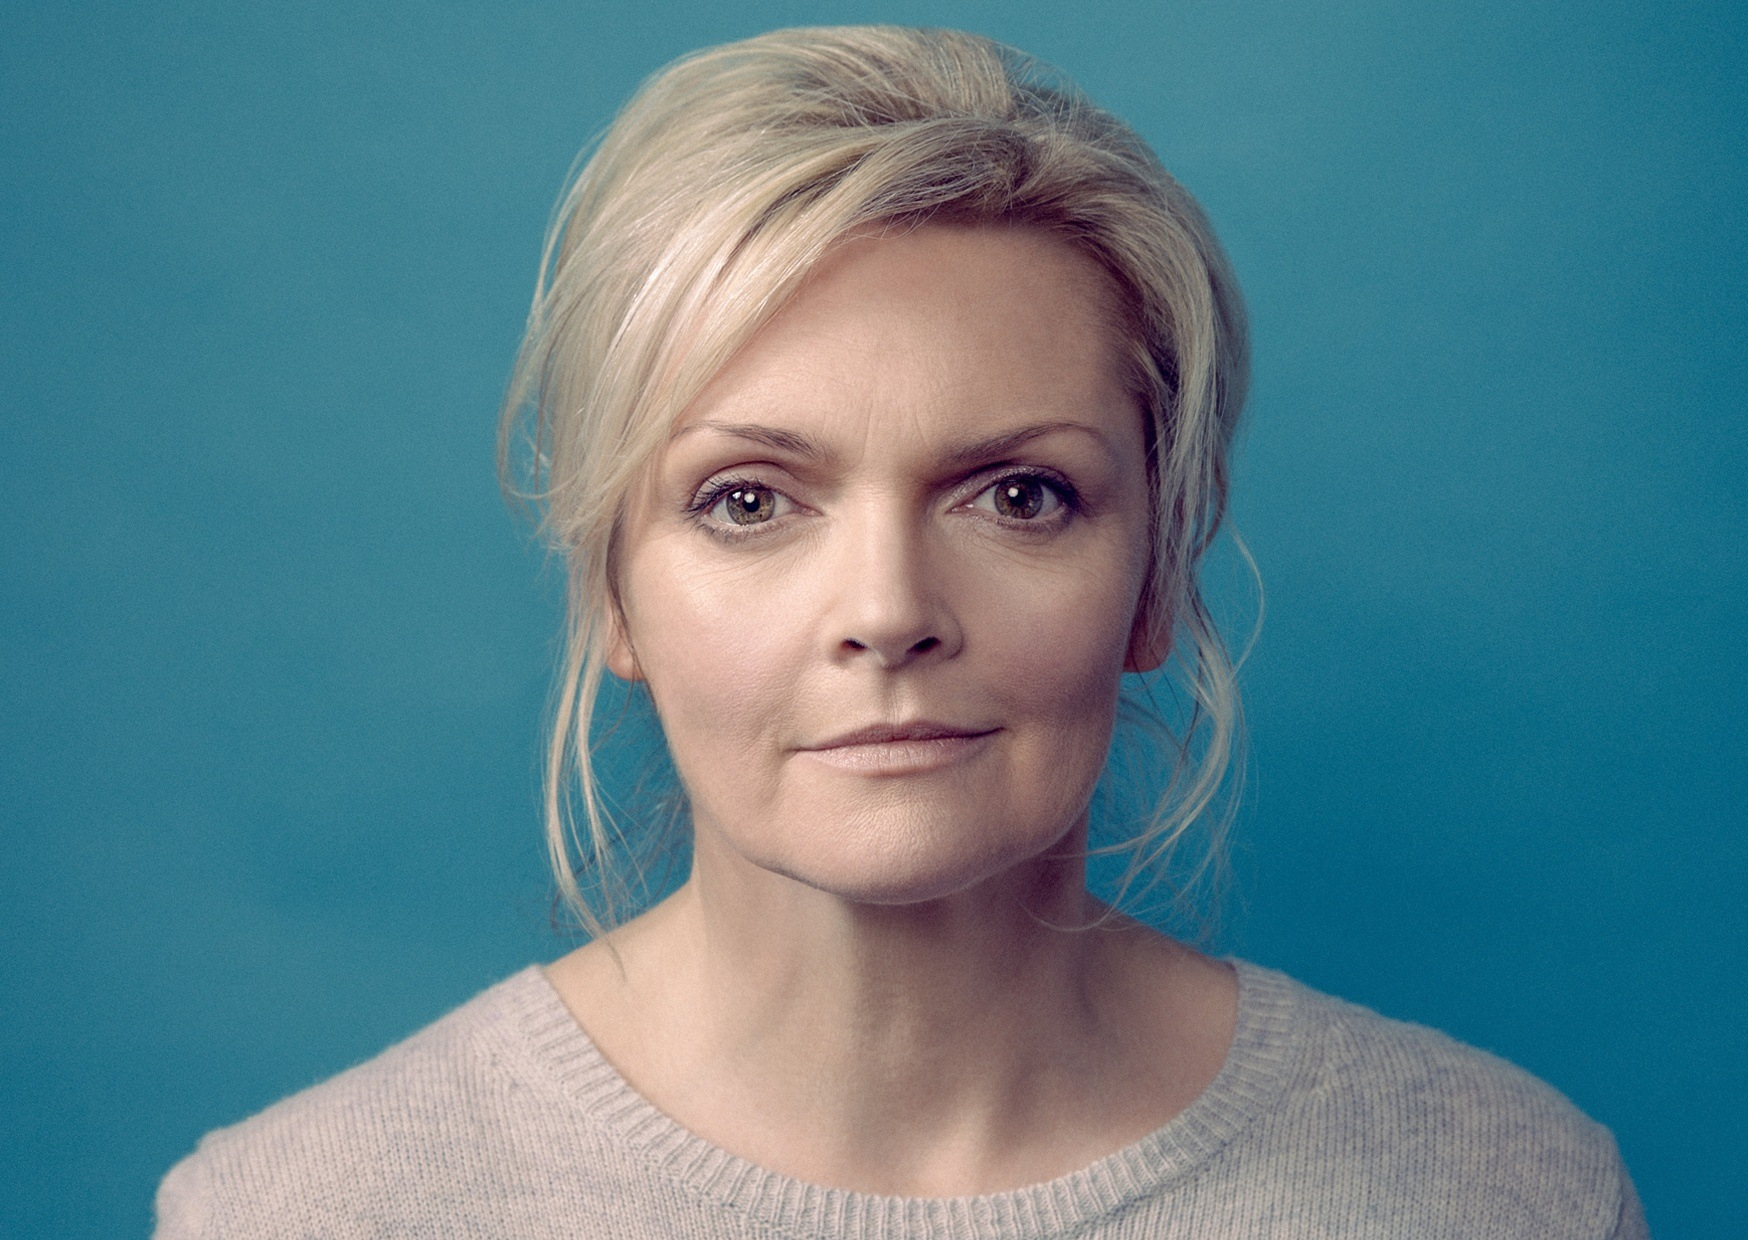 Full cast announced for new stage adaptation of Still Alice at West Yorkshire Playhouse, starring stage and screen actor Sharon Small